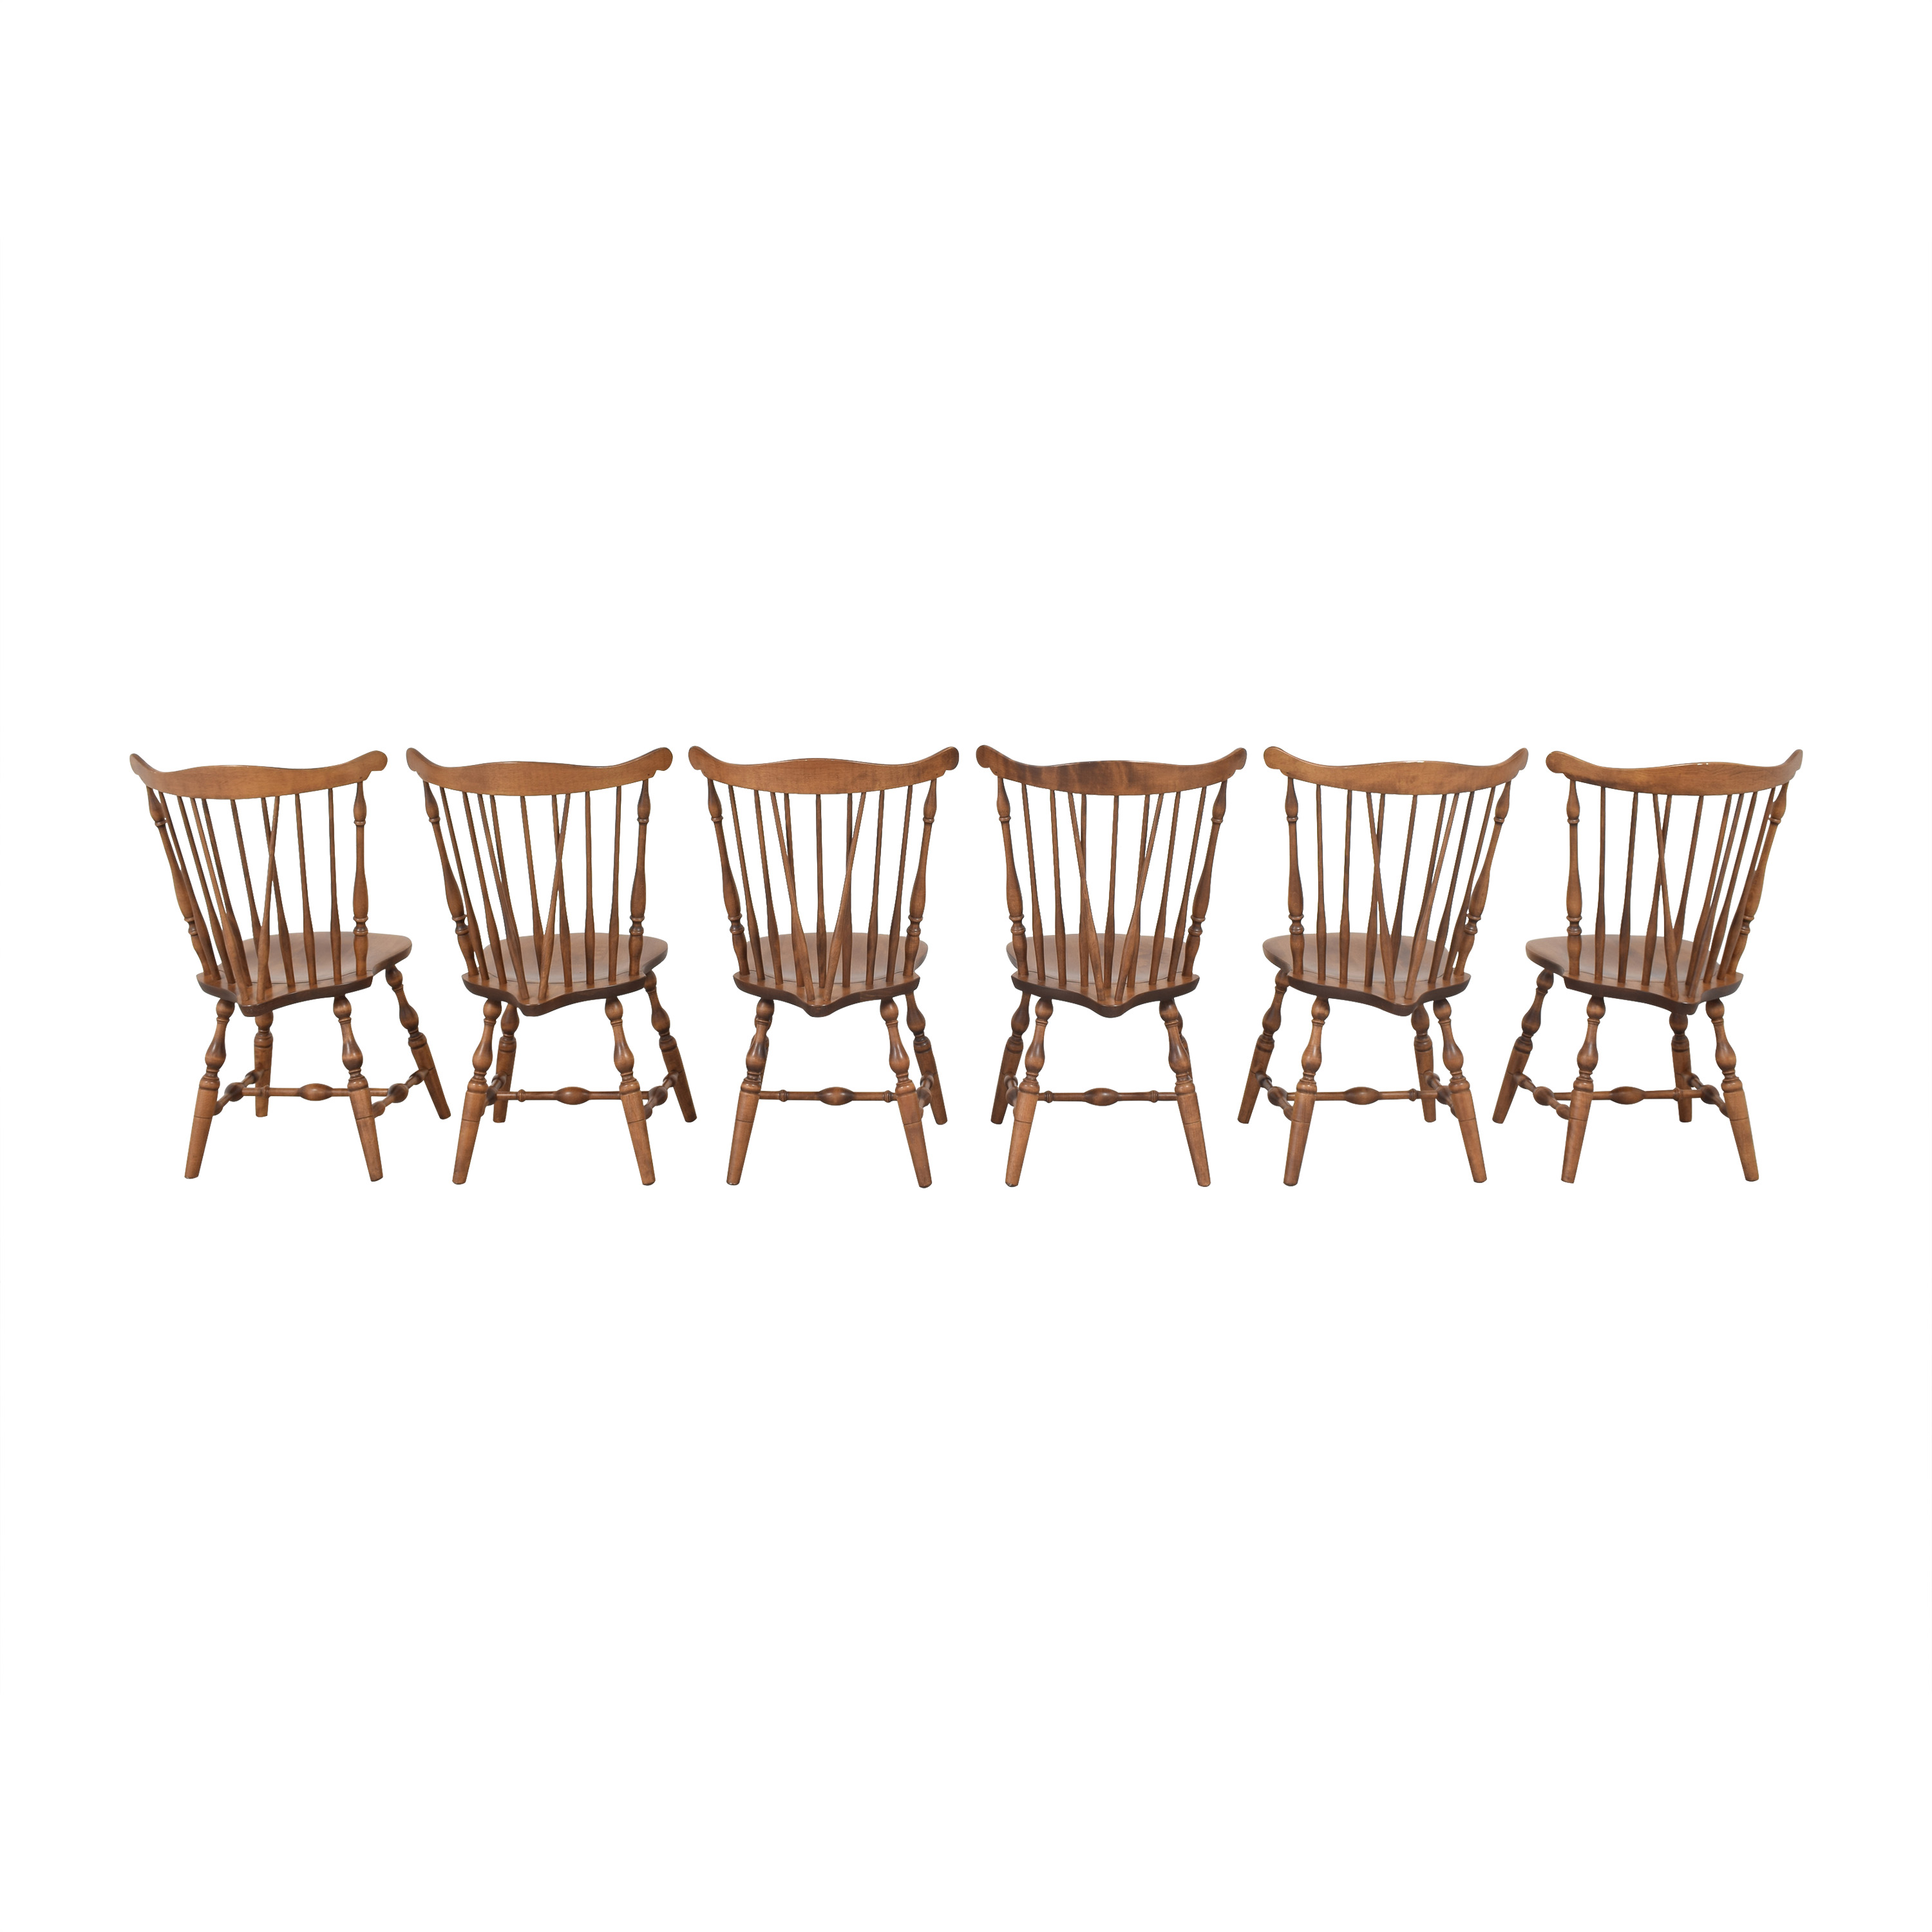 shop S. Bent & Bros Brace Back Windsor Dining Side Chairs S. Bent & Bros Dining Chairs